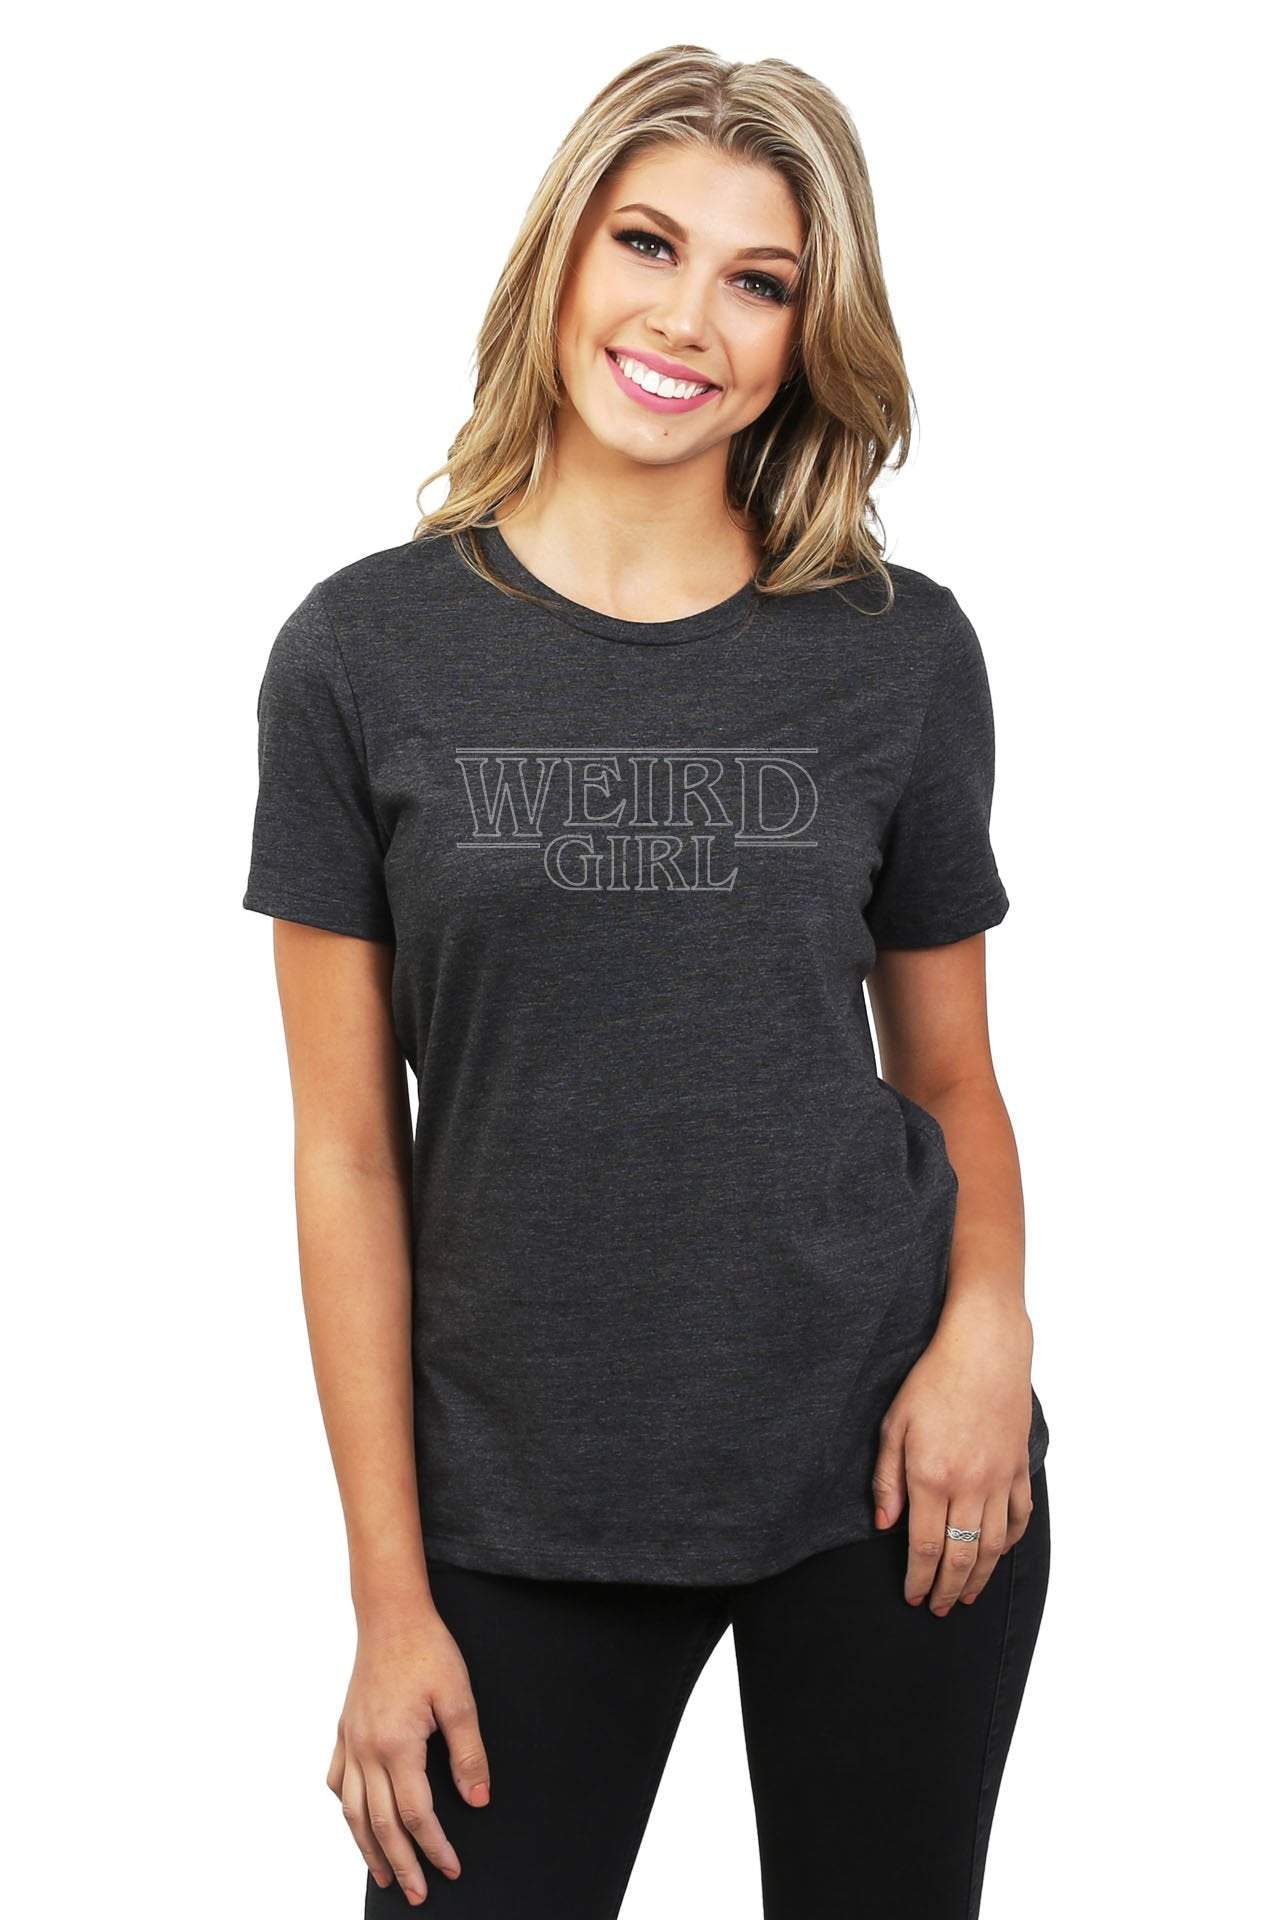 Weird Girl Women's Relaxed Crewneck T-Shirt Top Tee Charcoal Grey